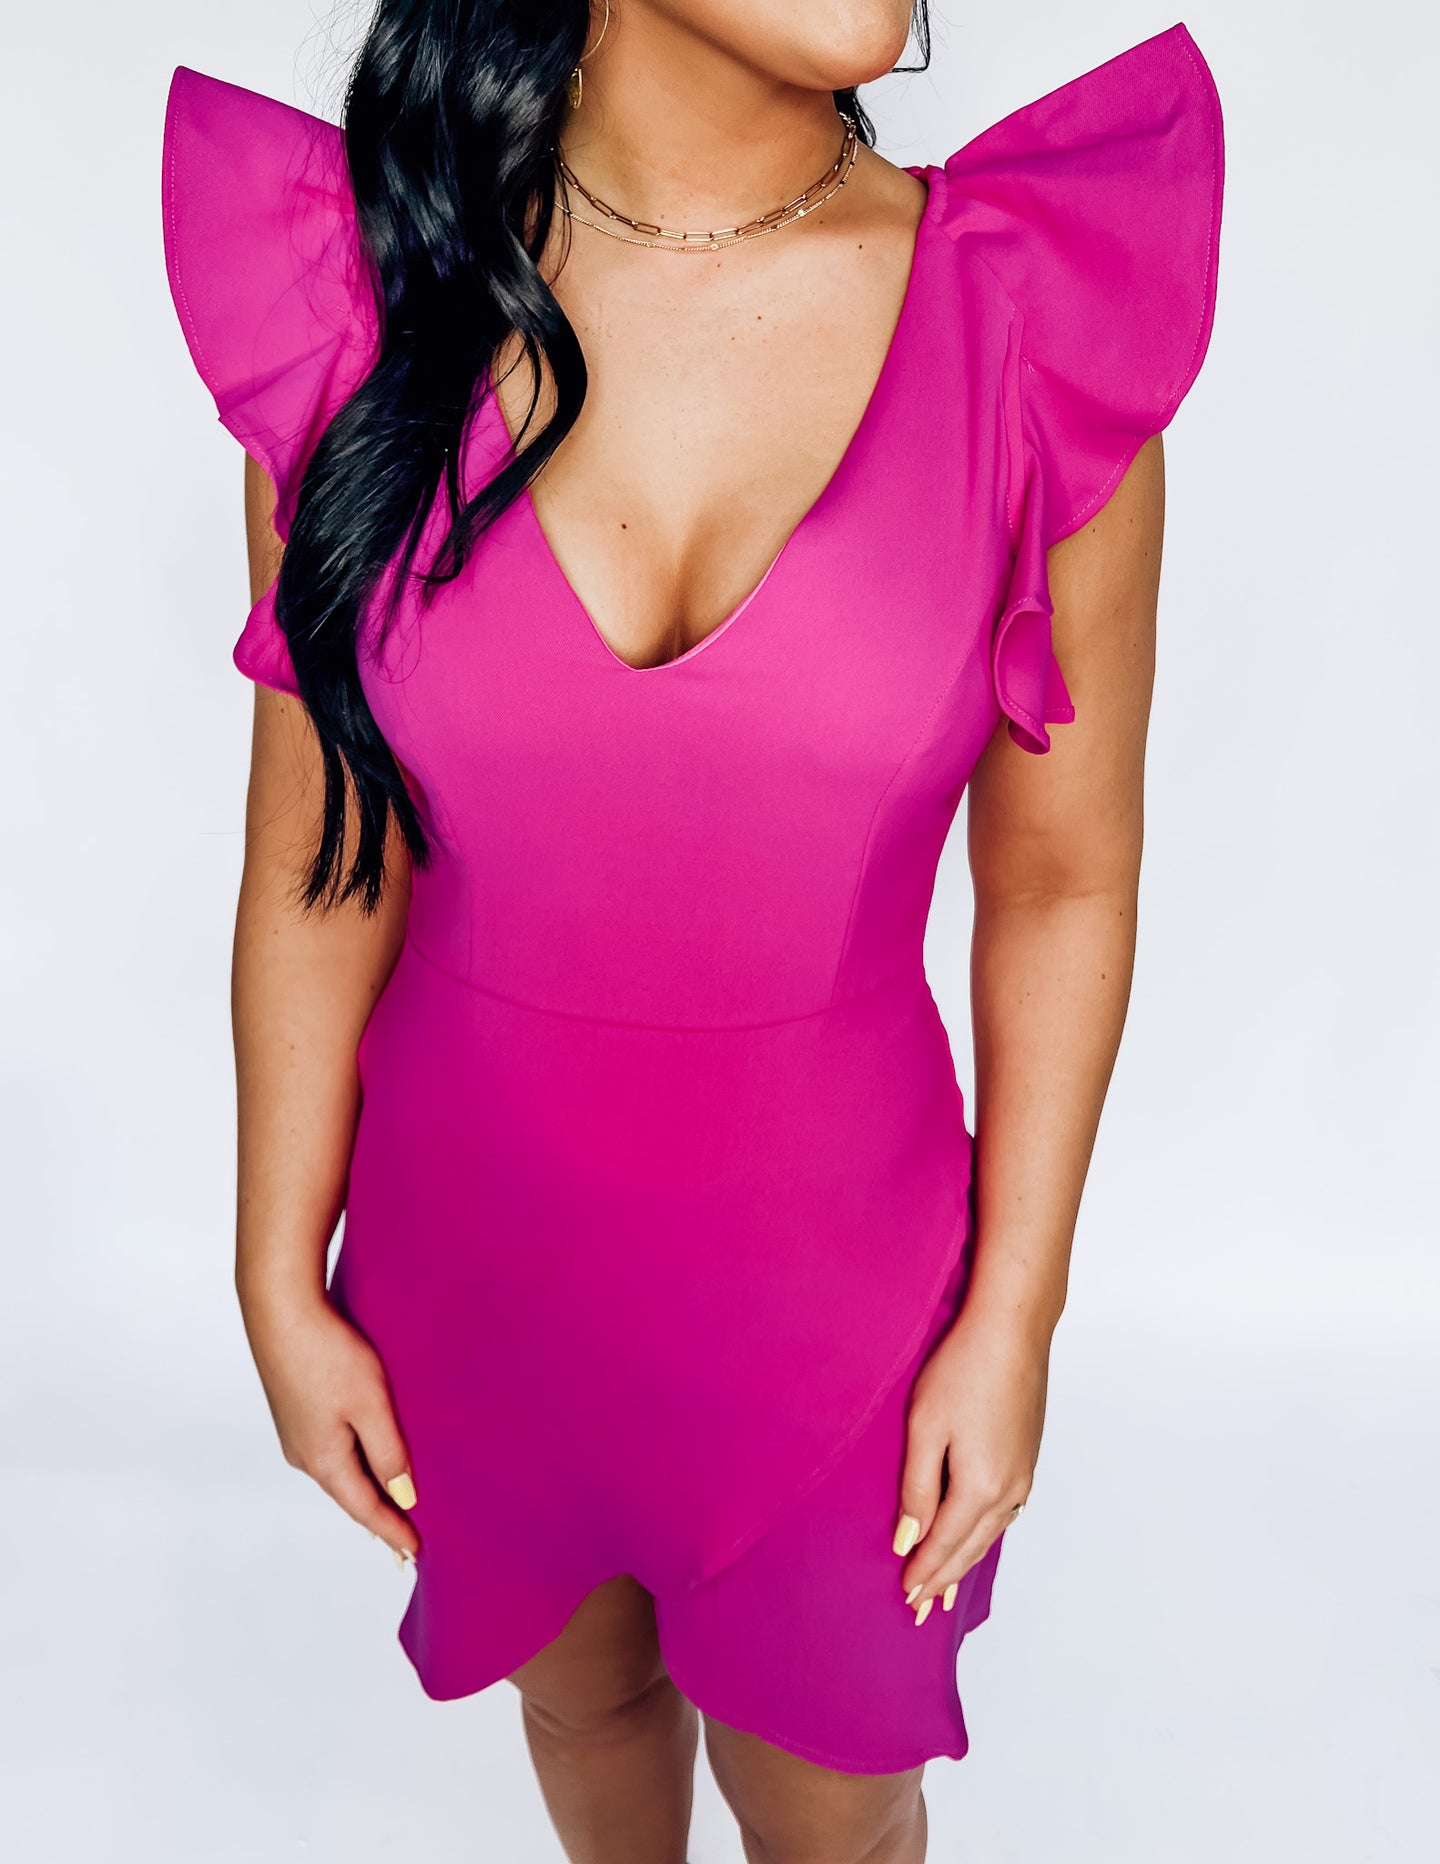 Addyson Nicole Make Heaven Crowded Long Sleeve Tee